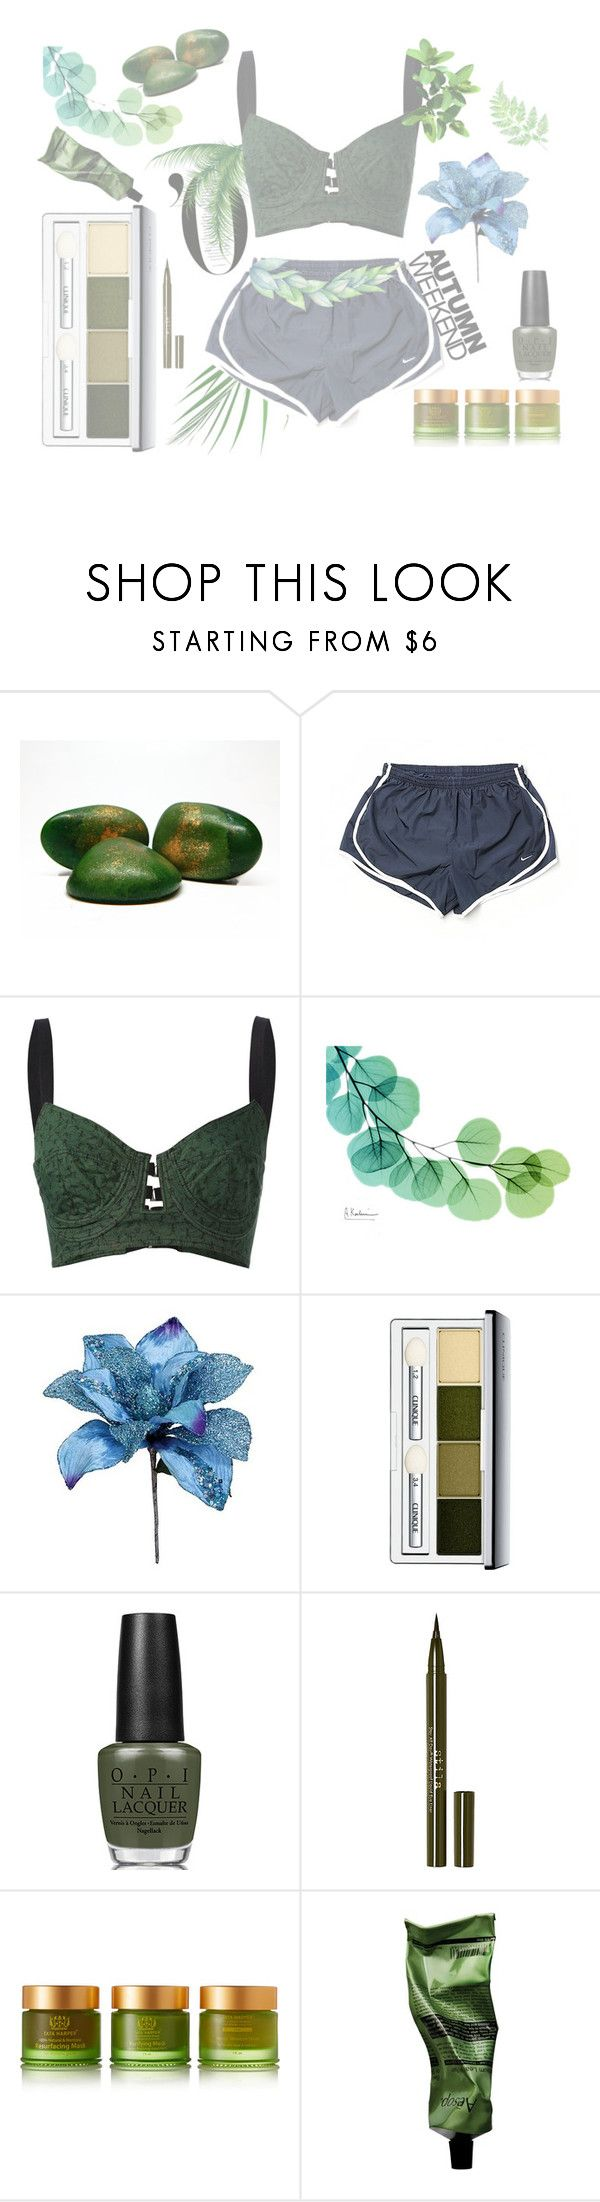 """Lives"" by galaxy-moon-stars on Polyvore featuring NIKE, Jean-Paul Gaultier, Clinique, OPI, Stila, Tata Harper, Aesop and plants"